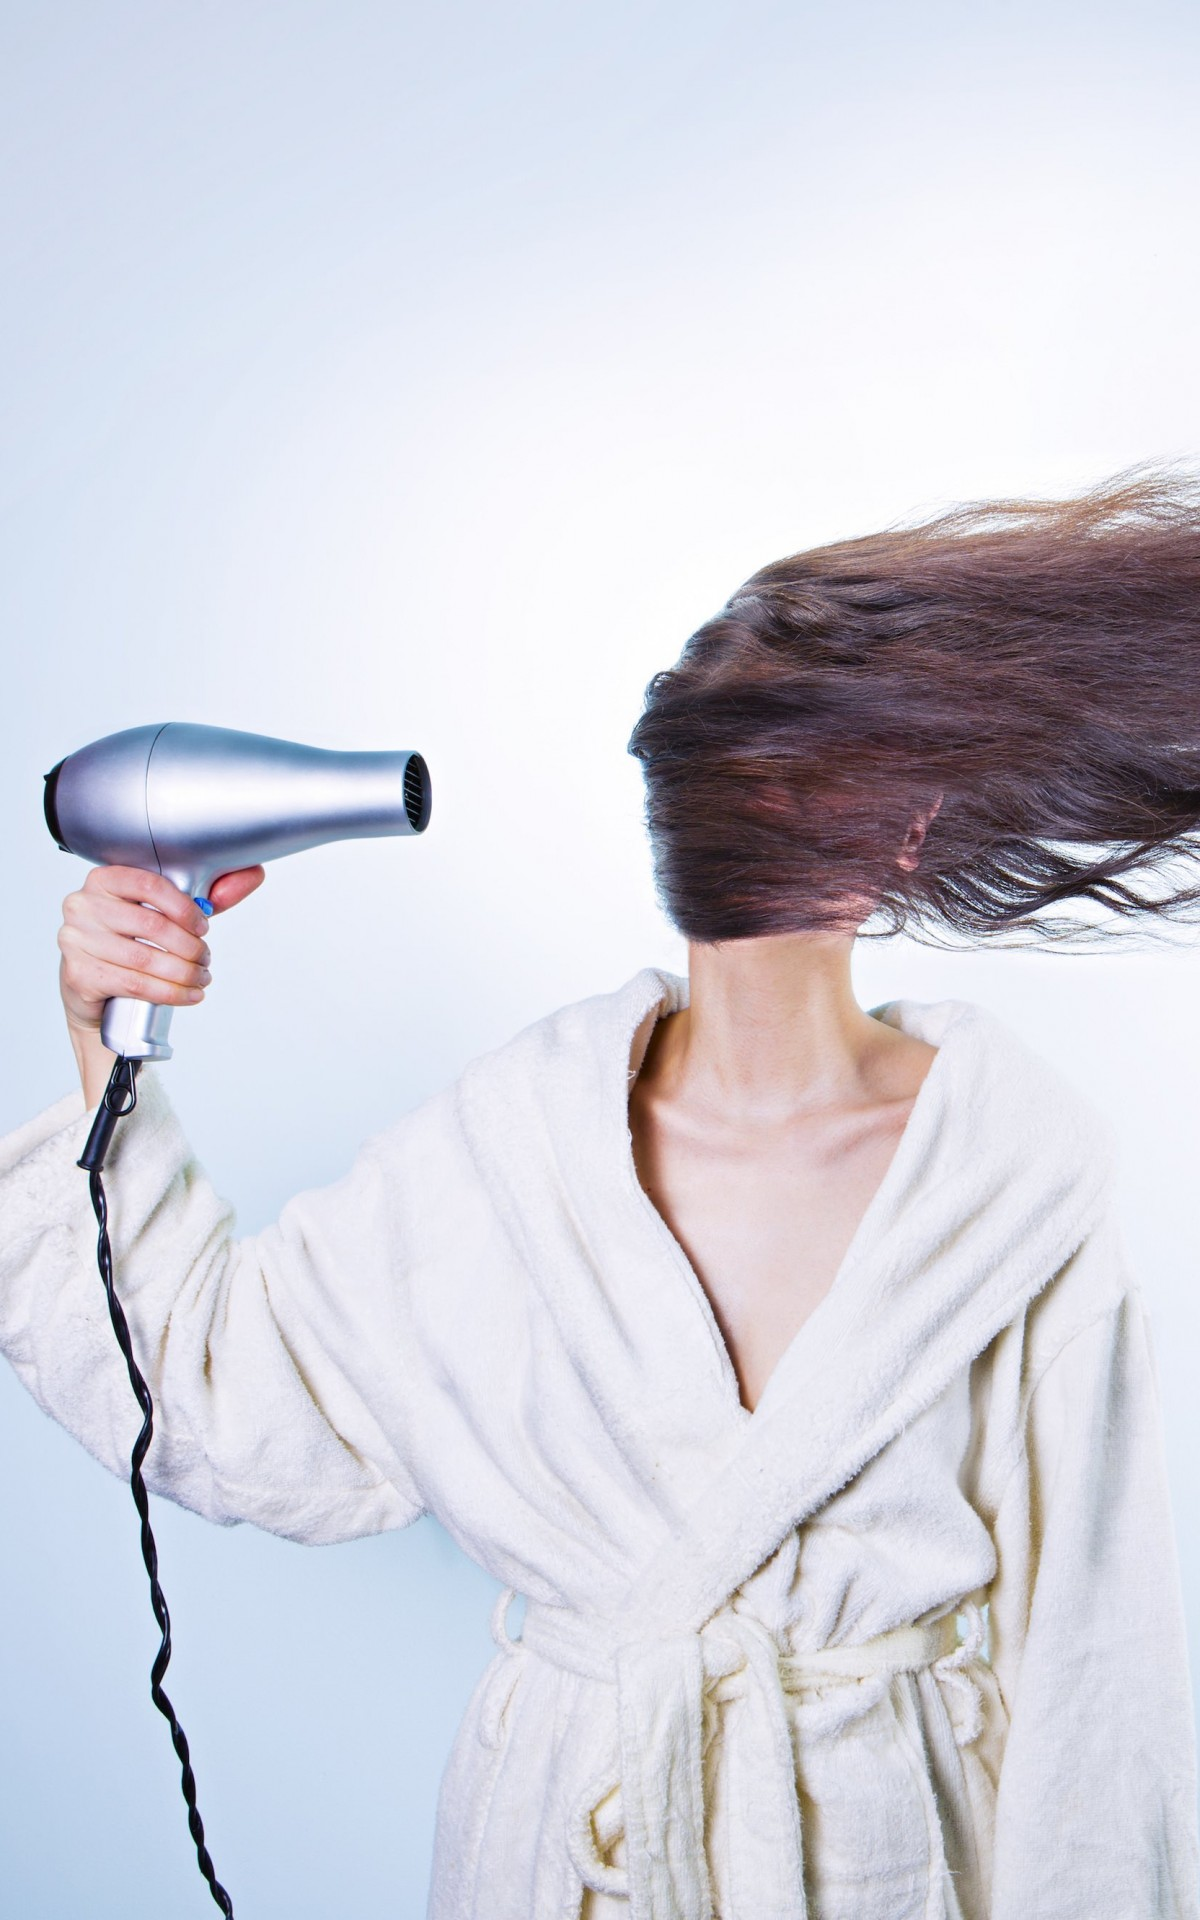 Powerful Hair Dryer Wallpaper for Amazon Kindle Fire HDX